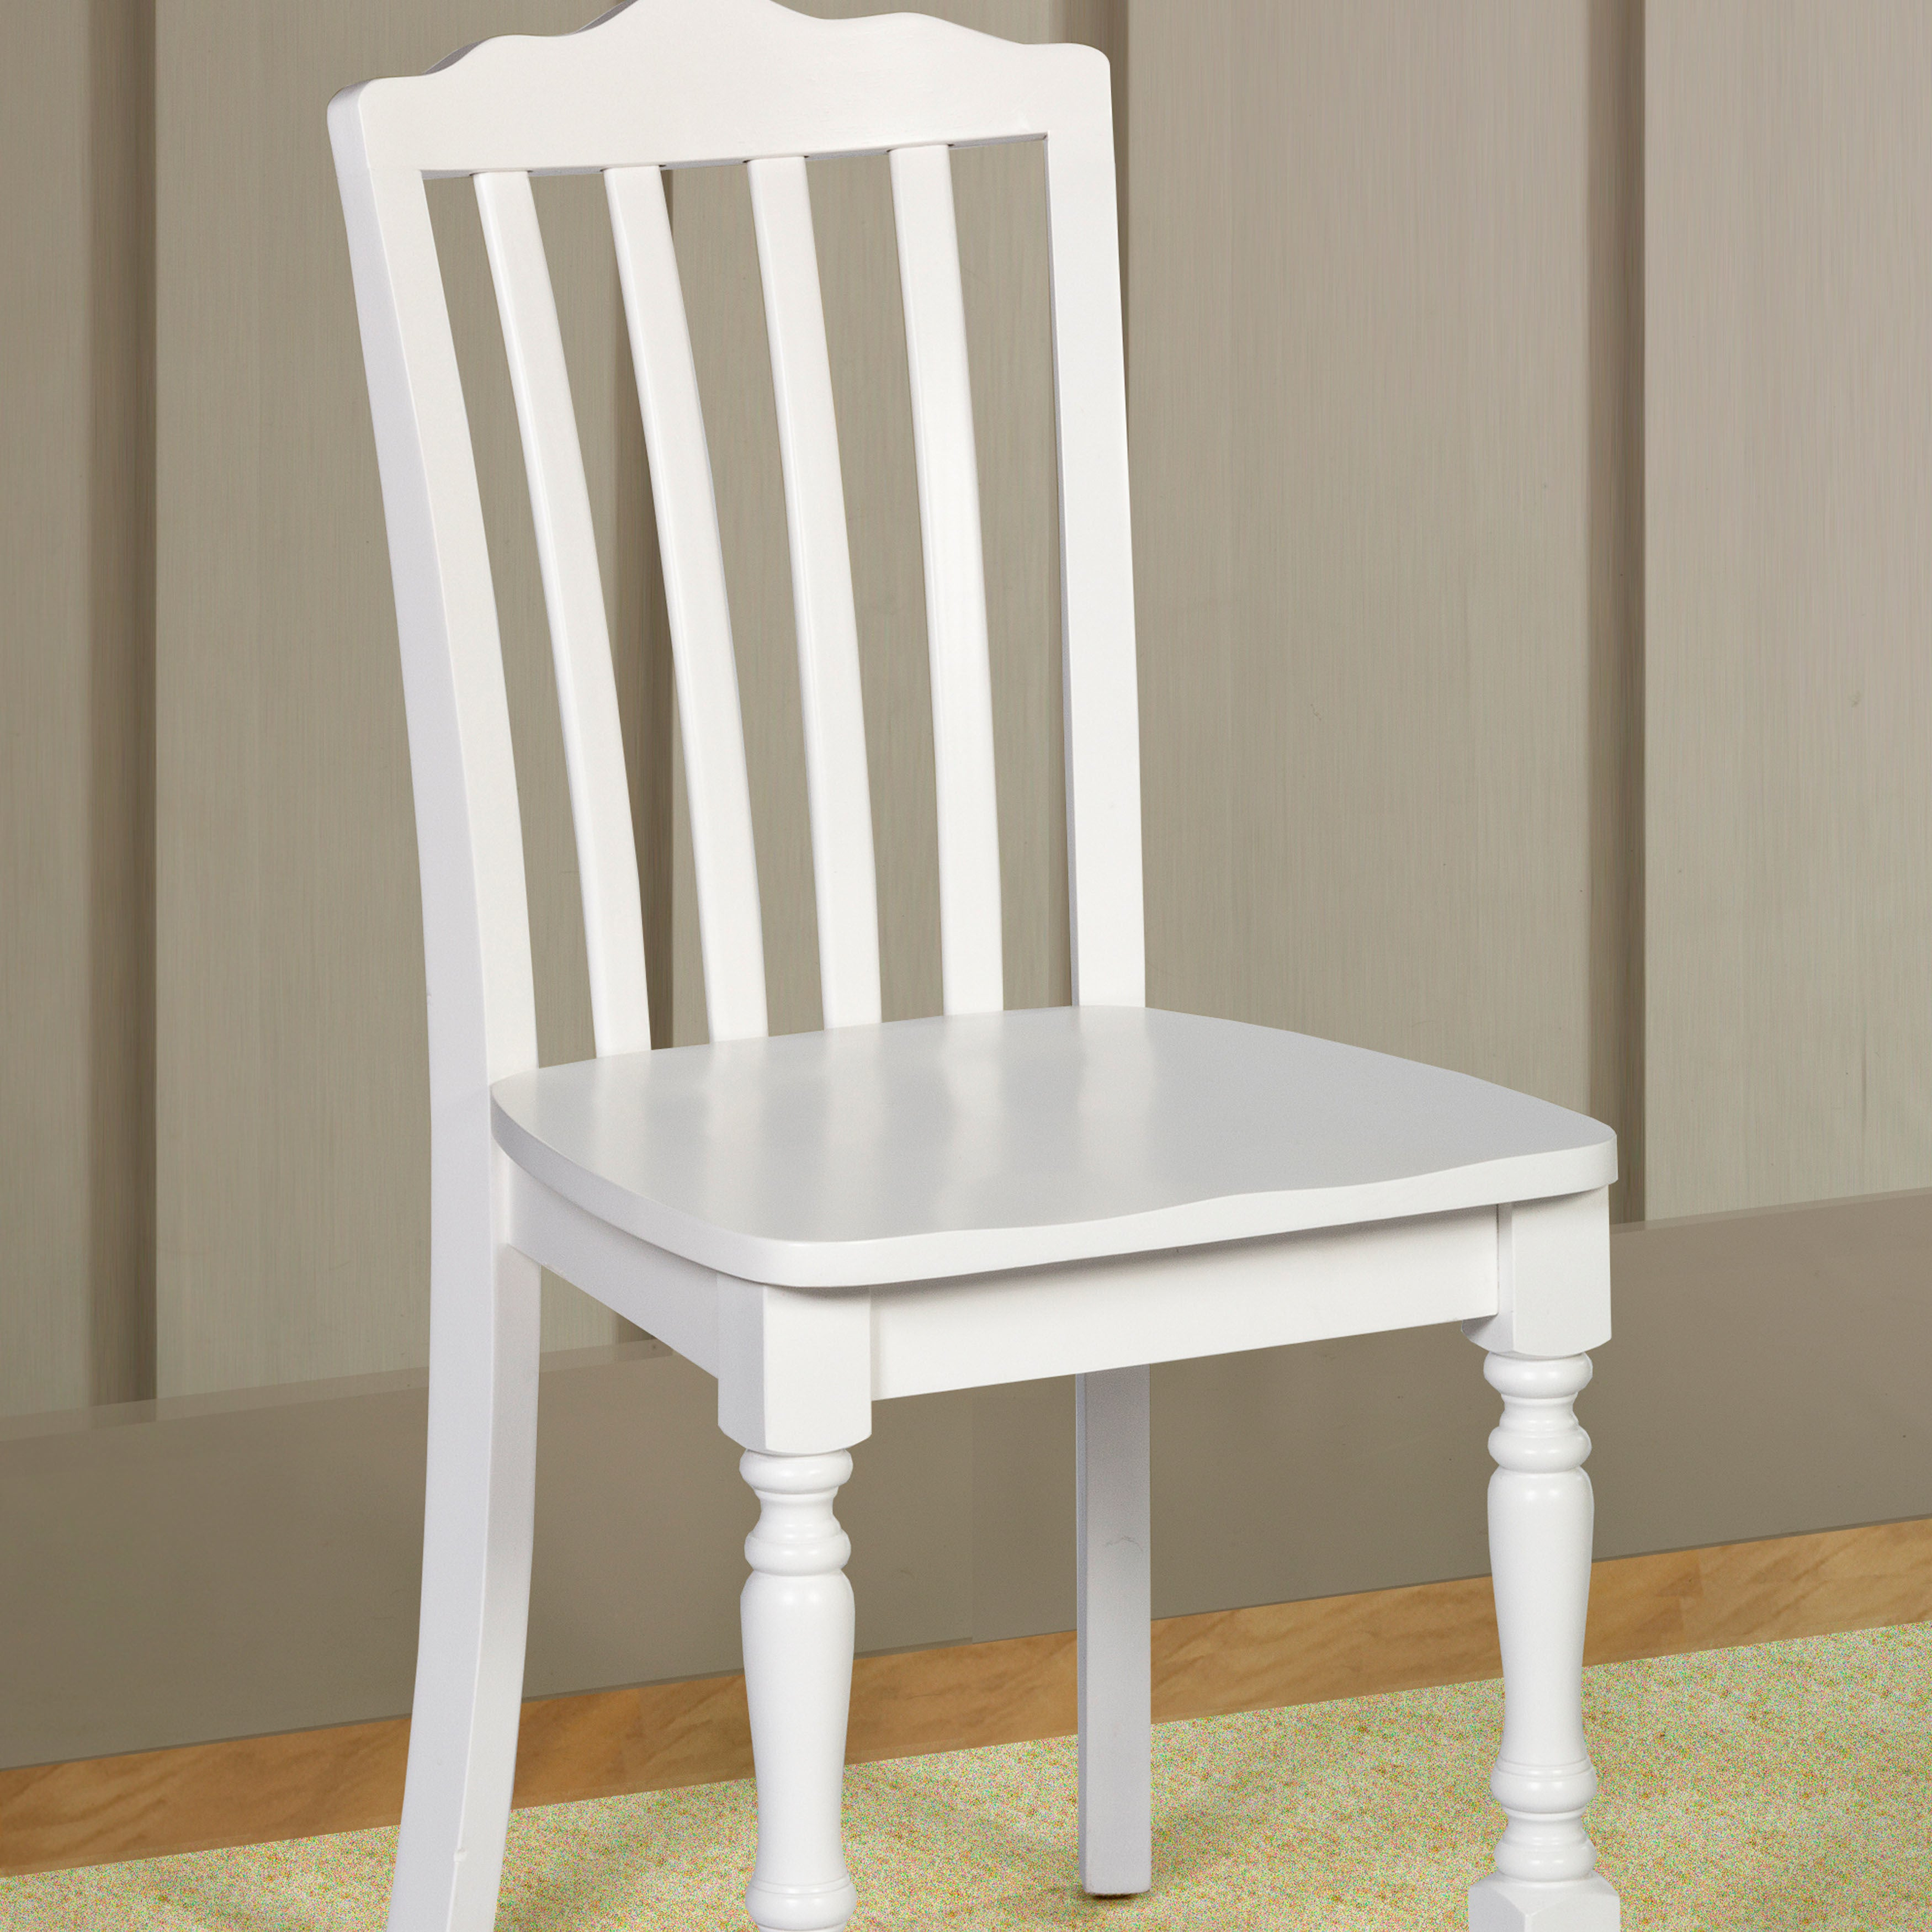 Shop Hillsdale Furniture Lauren Chair in White Finish - On Sale - Free Shipping Today - Overstock.com - 16342009 & Shop Hillsdale Furniture Lauren Chair in White Finish - On Sale ...